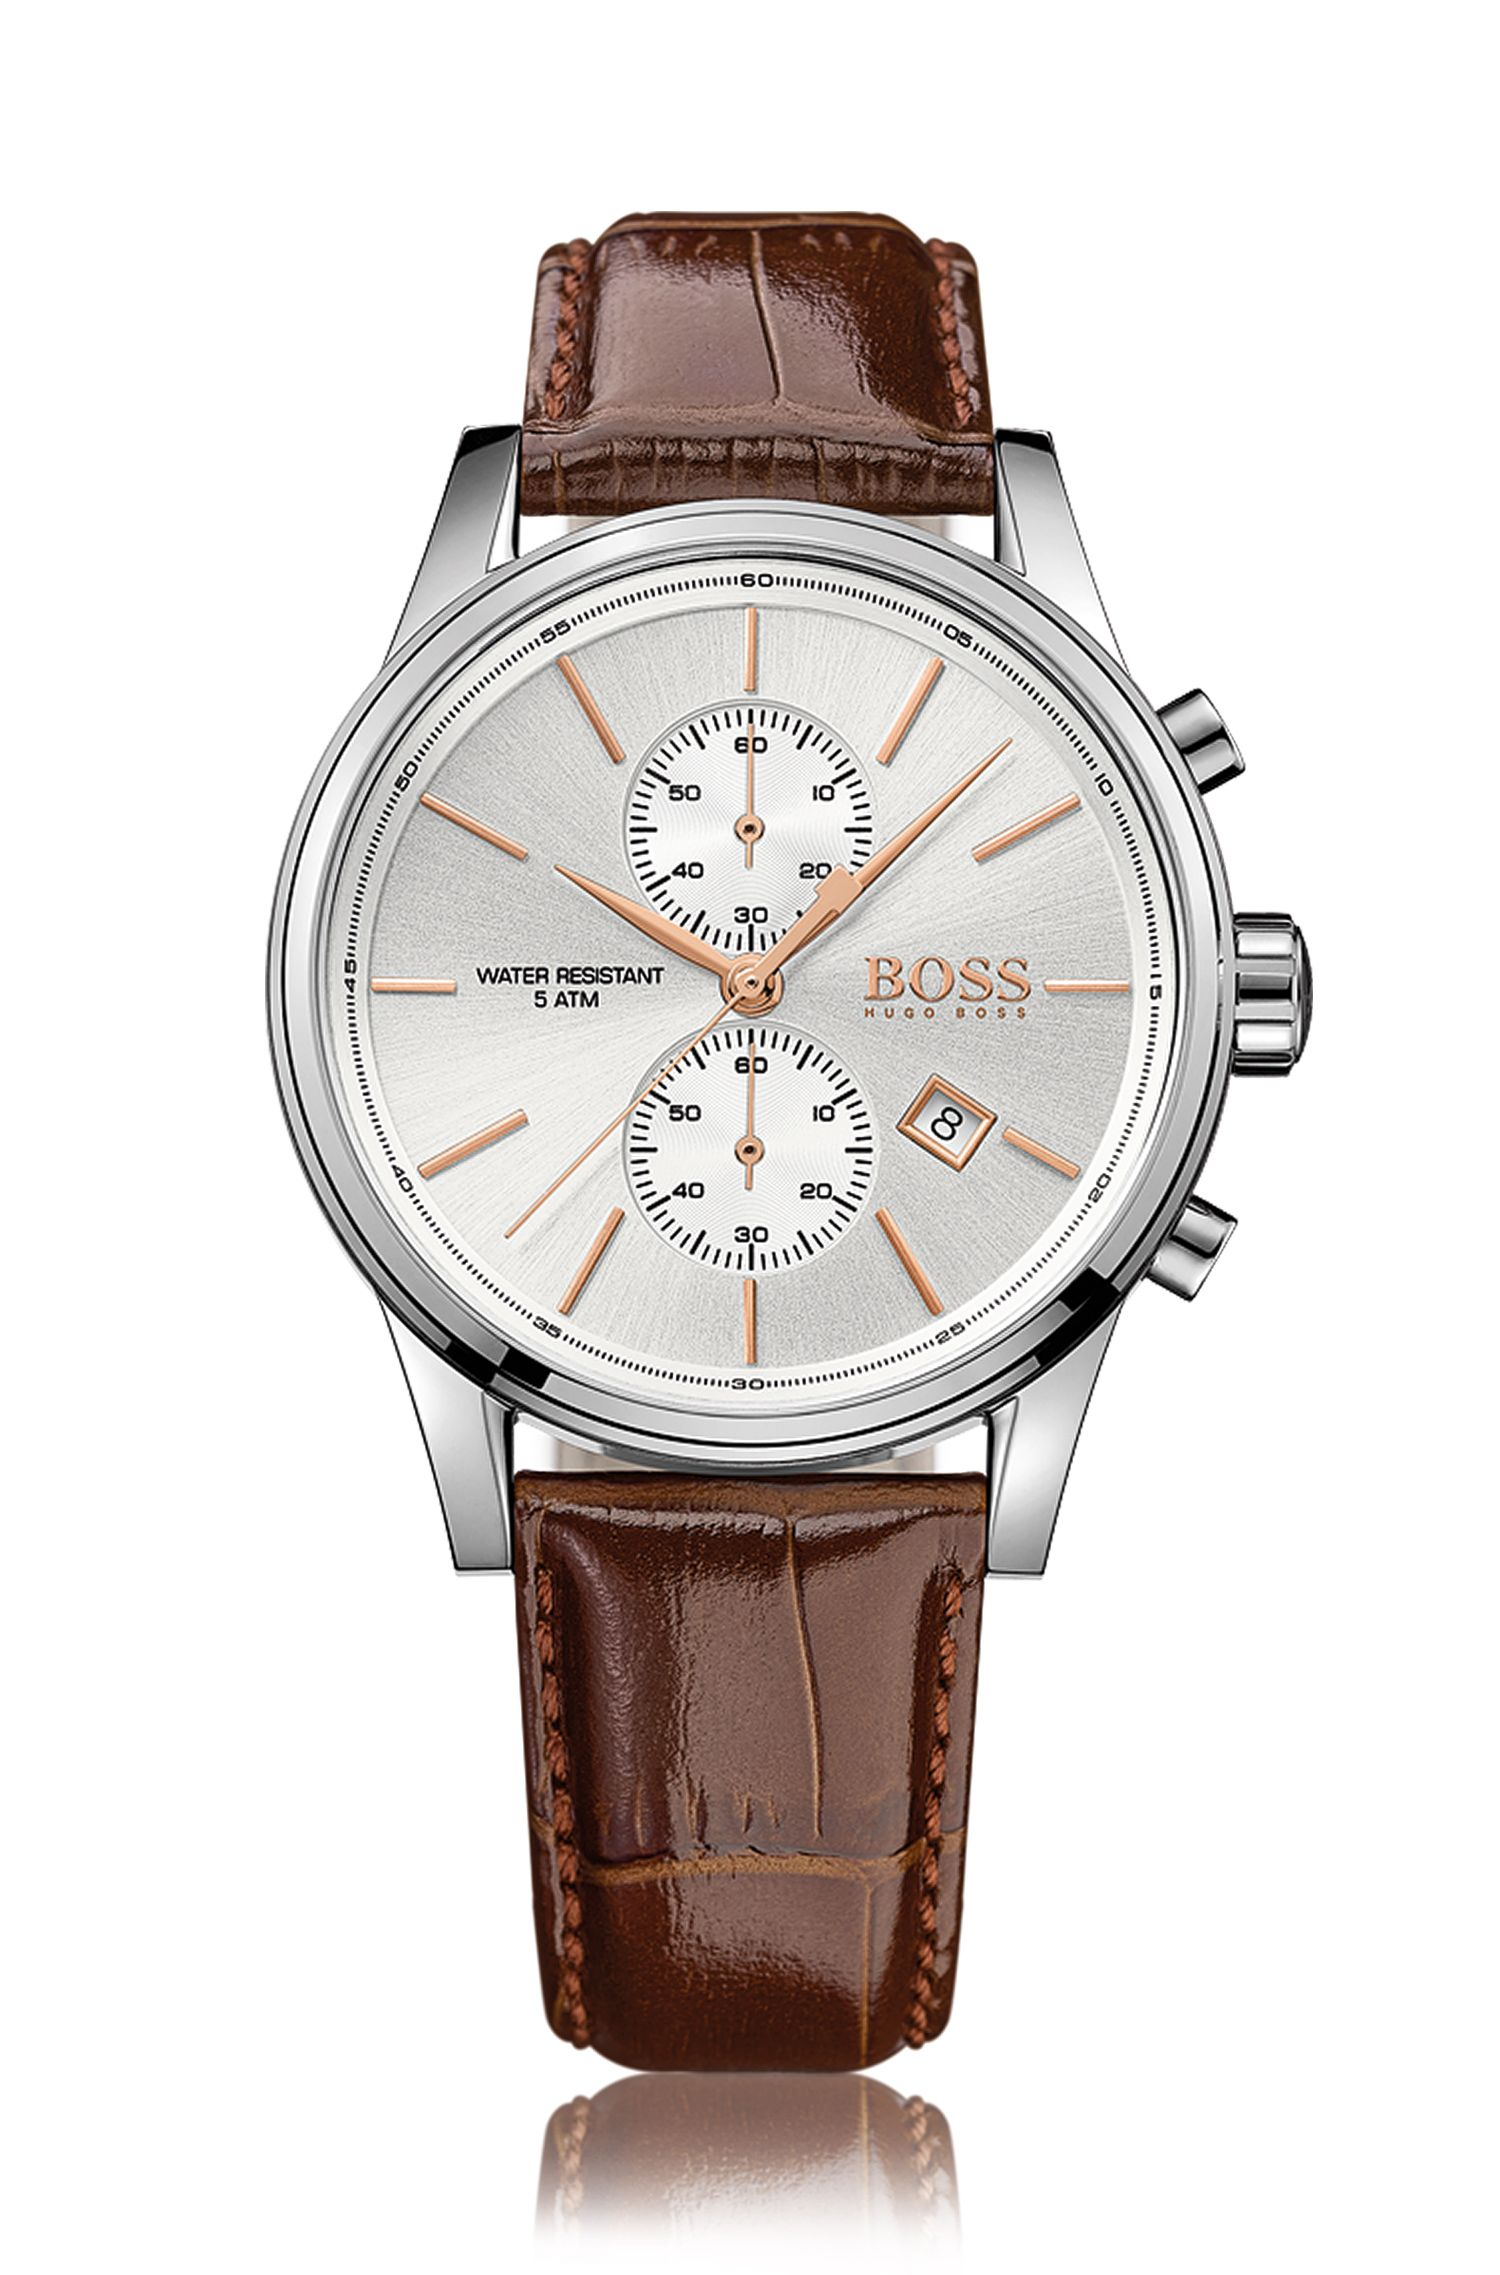 Three-hand watch with leather strap